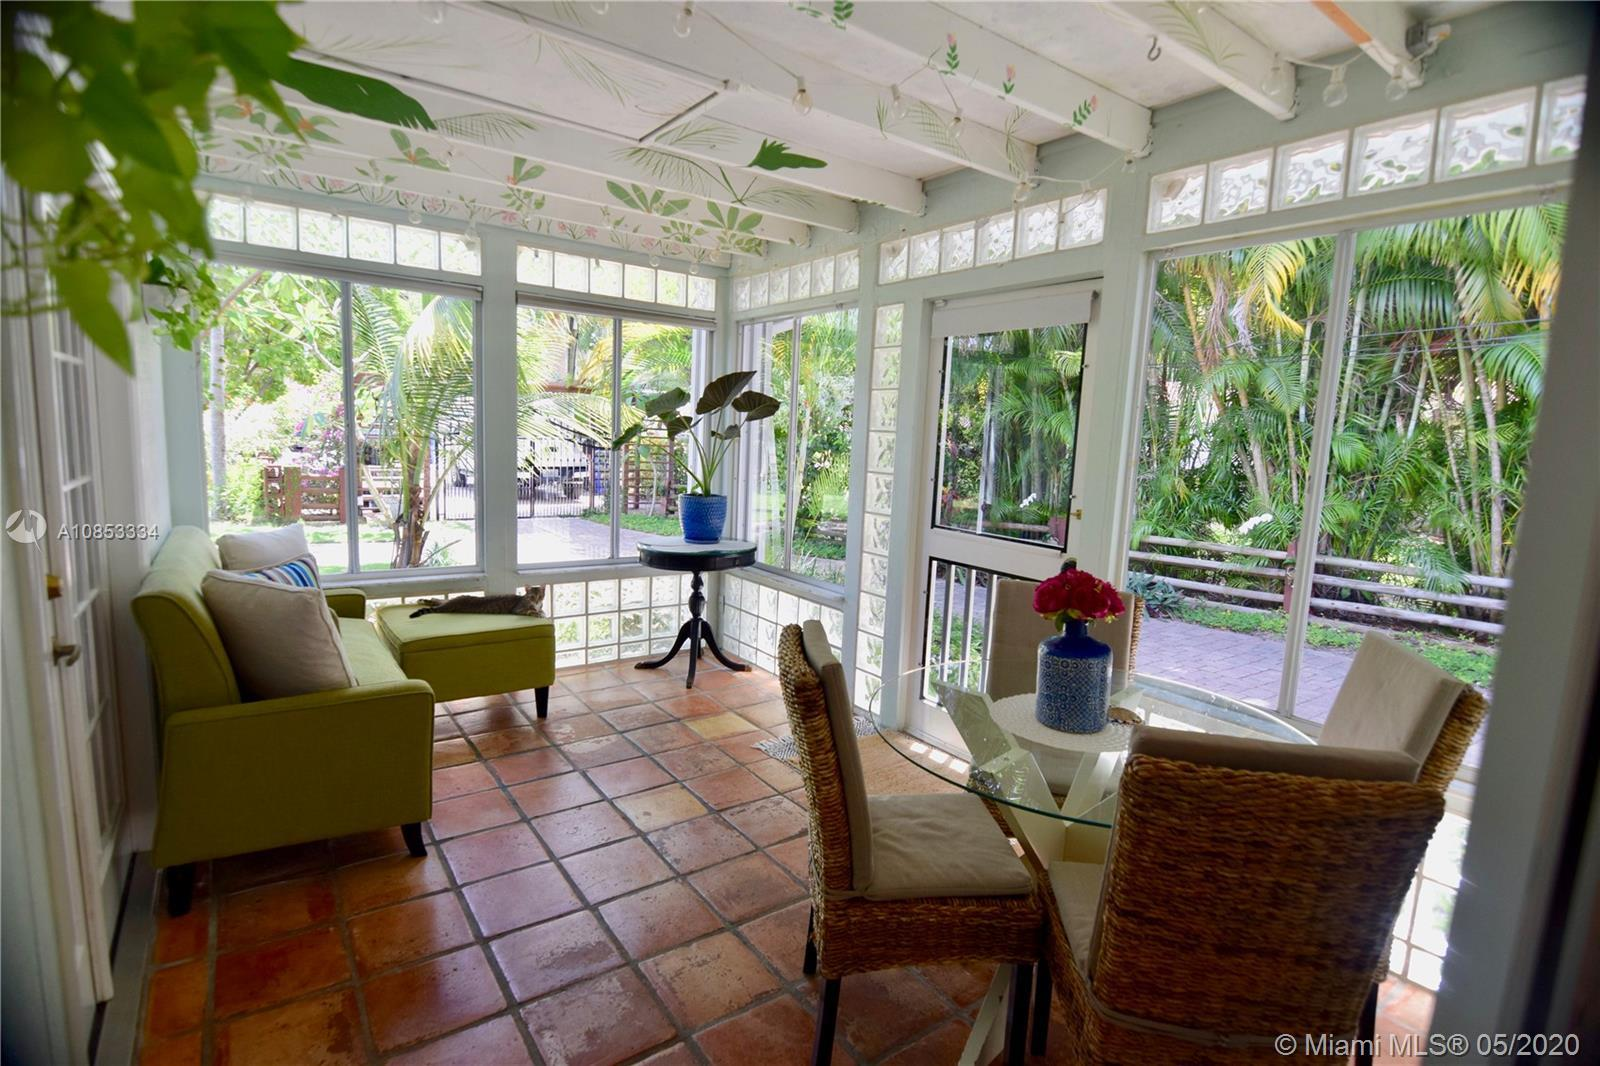 Art, nature & beauty meet in this lush oasis! Nestled on quiet street w easy access to 95 & 595.  Wa